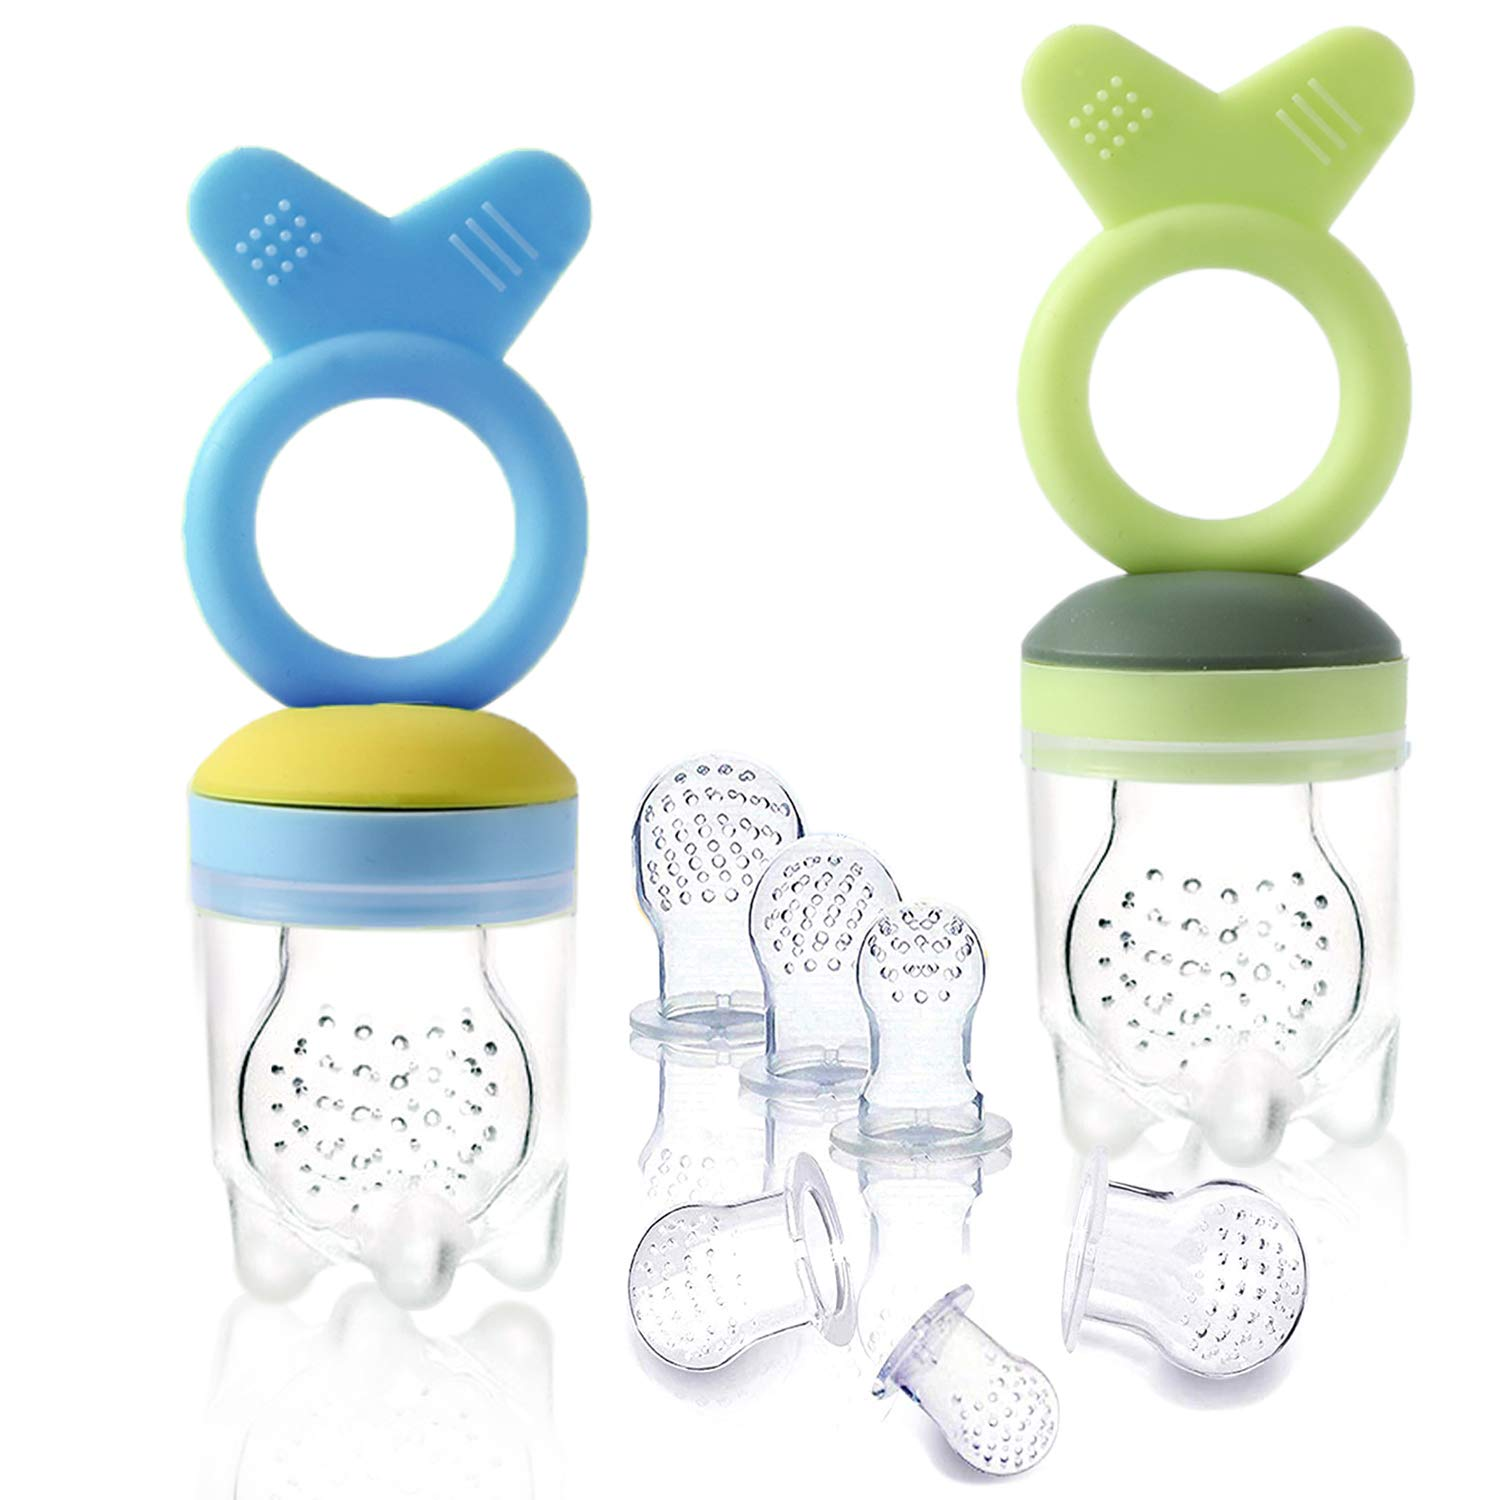 Gedebey Baby Food Pacifier Feeder – (2 Pack) Fruit Silicone with Pacifiers Meshes Infant Toys Fresh Frozen Fruit Toy Newborn Hygienic Nibbler Cover Set